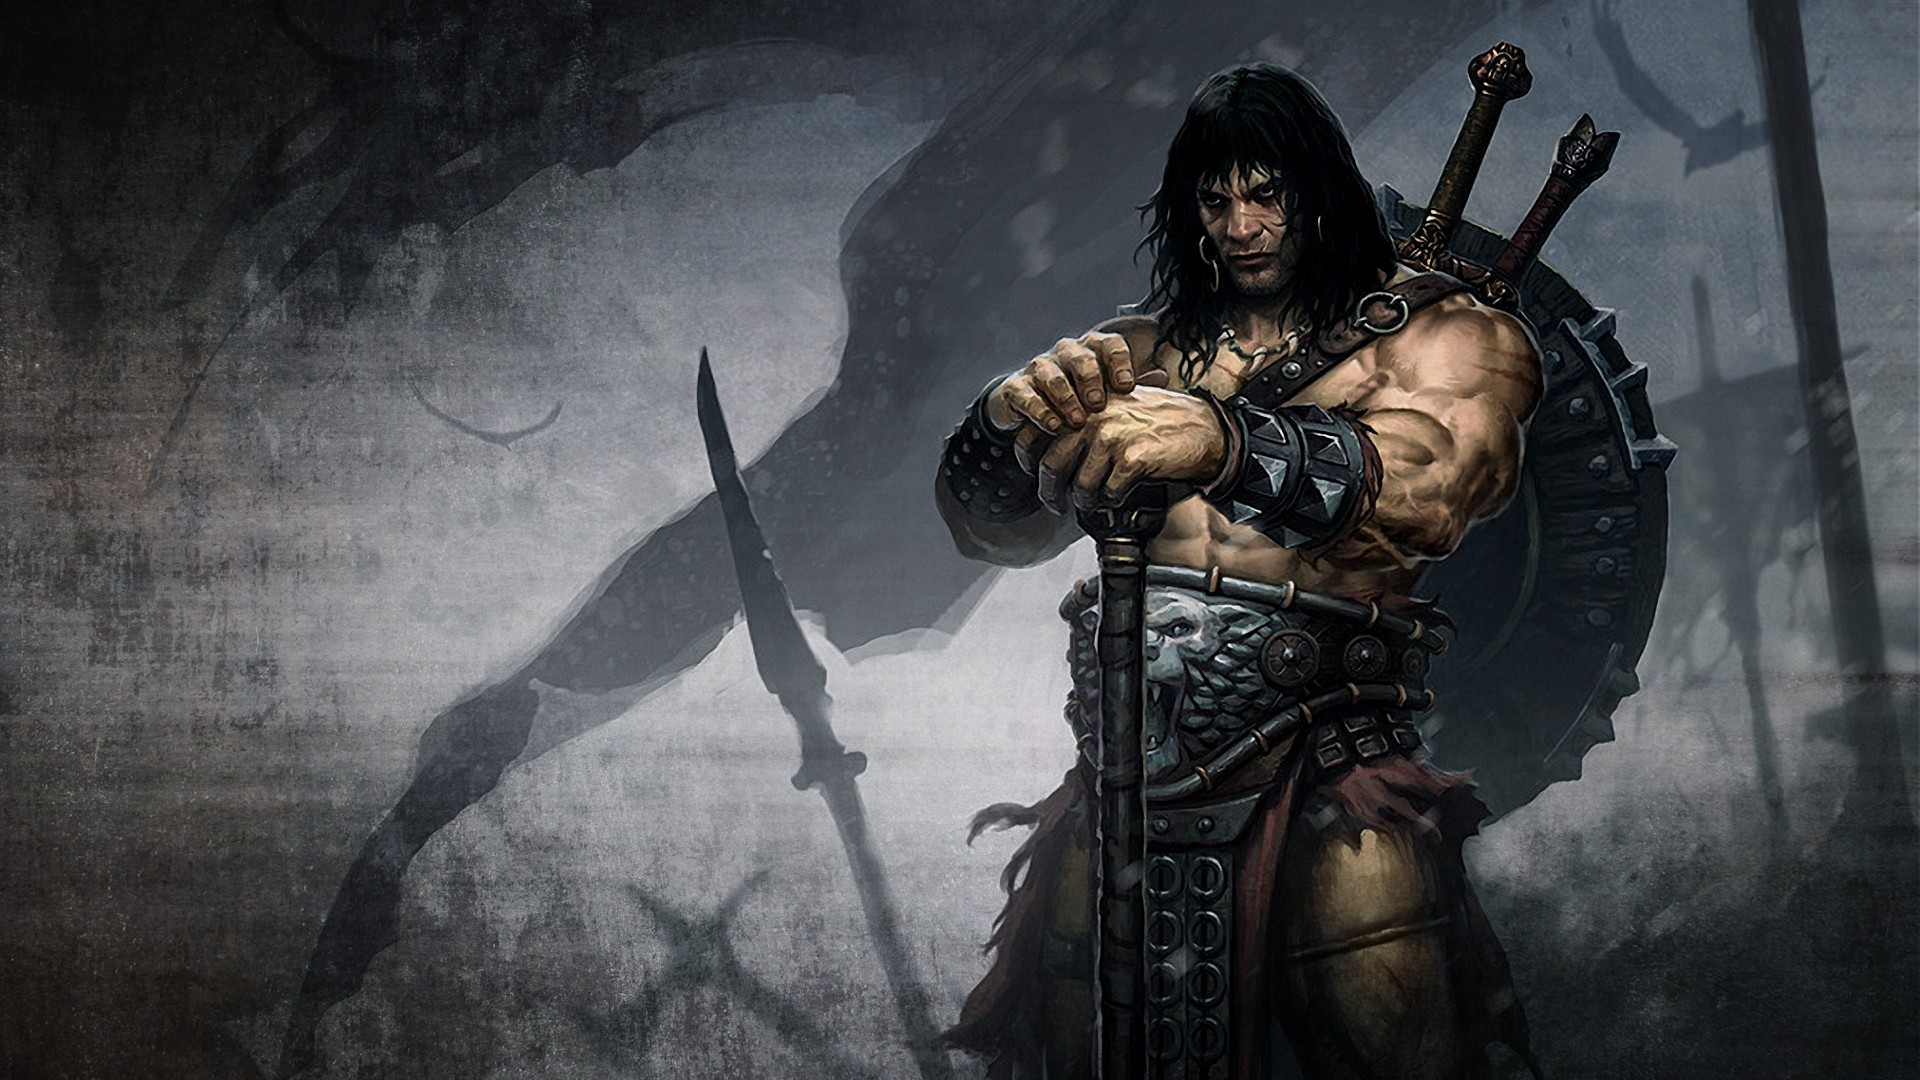 Wallpapers fantasy art artwork Conan the Barbarian 1920x1080